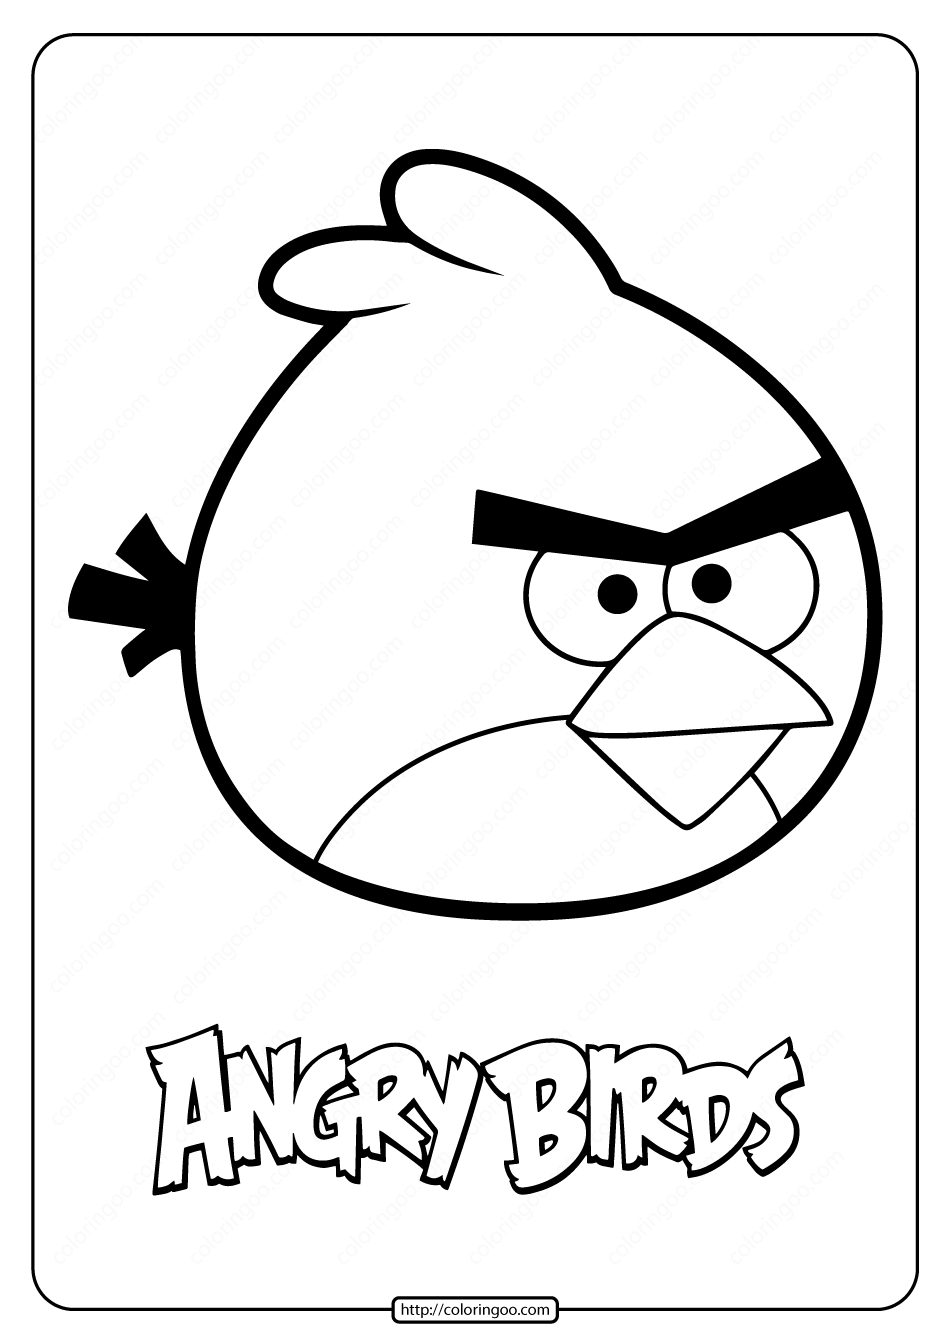 Printable Angry Birds Red Pdf Coloring Pages Bird Coloring Pages Coloring Pages Coloring Book Pages